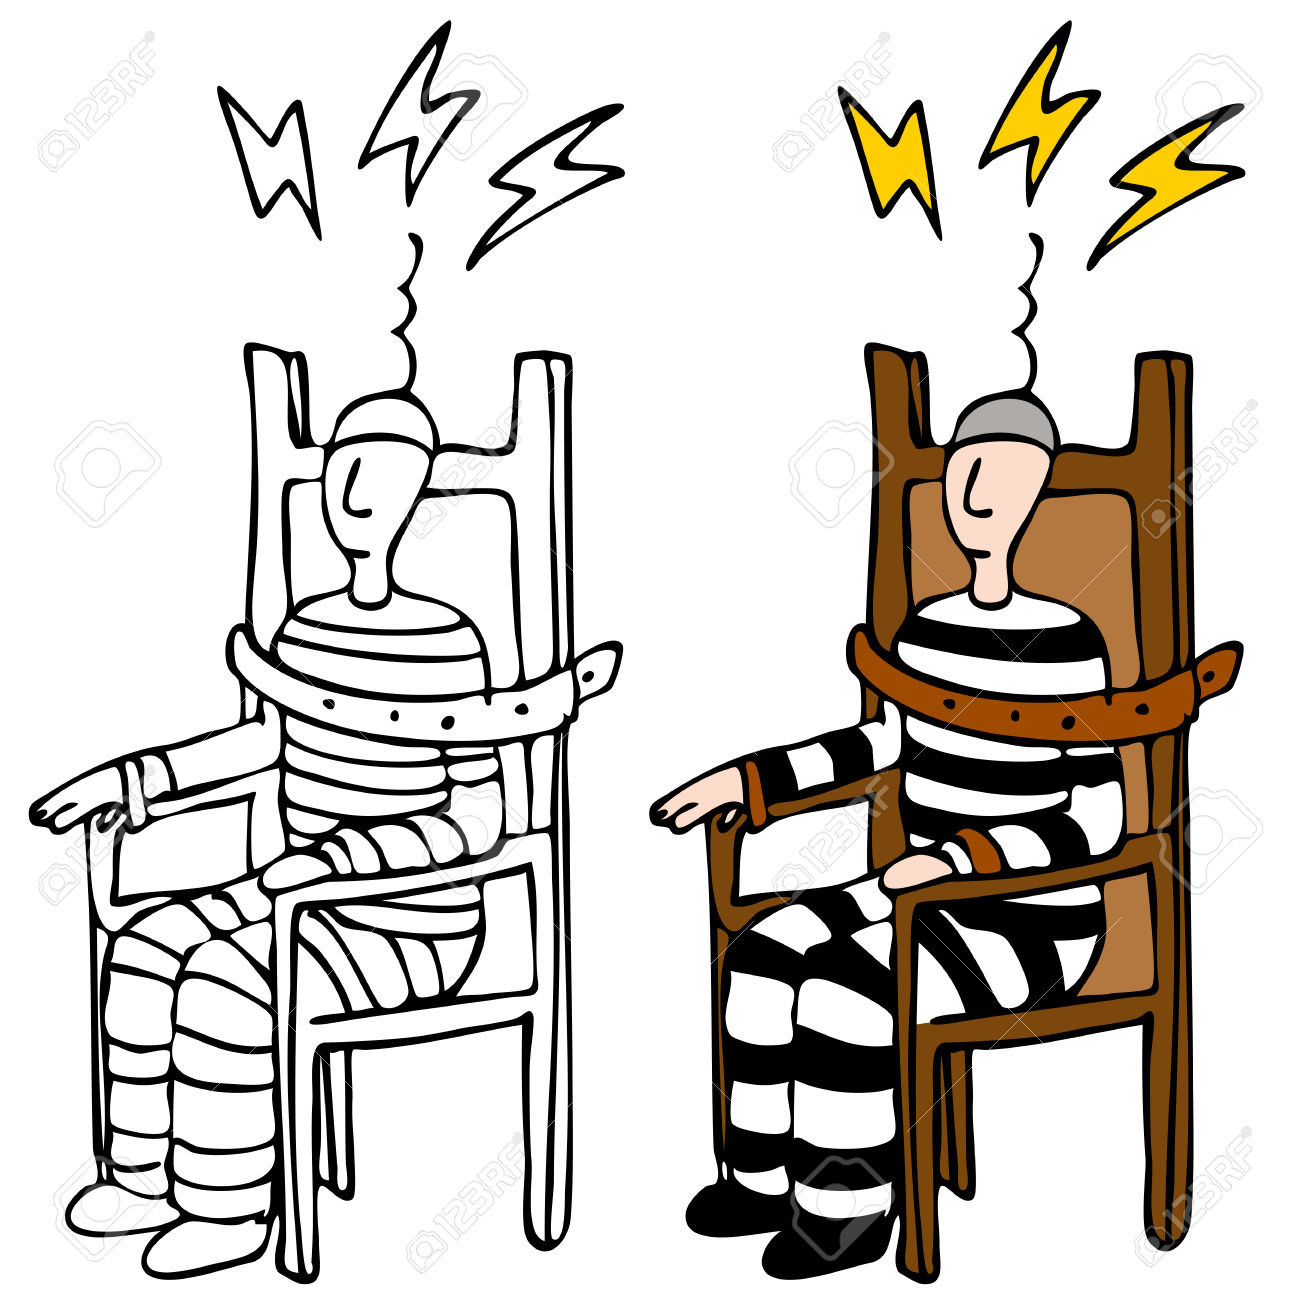 Electric chair clipart.